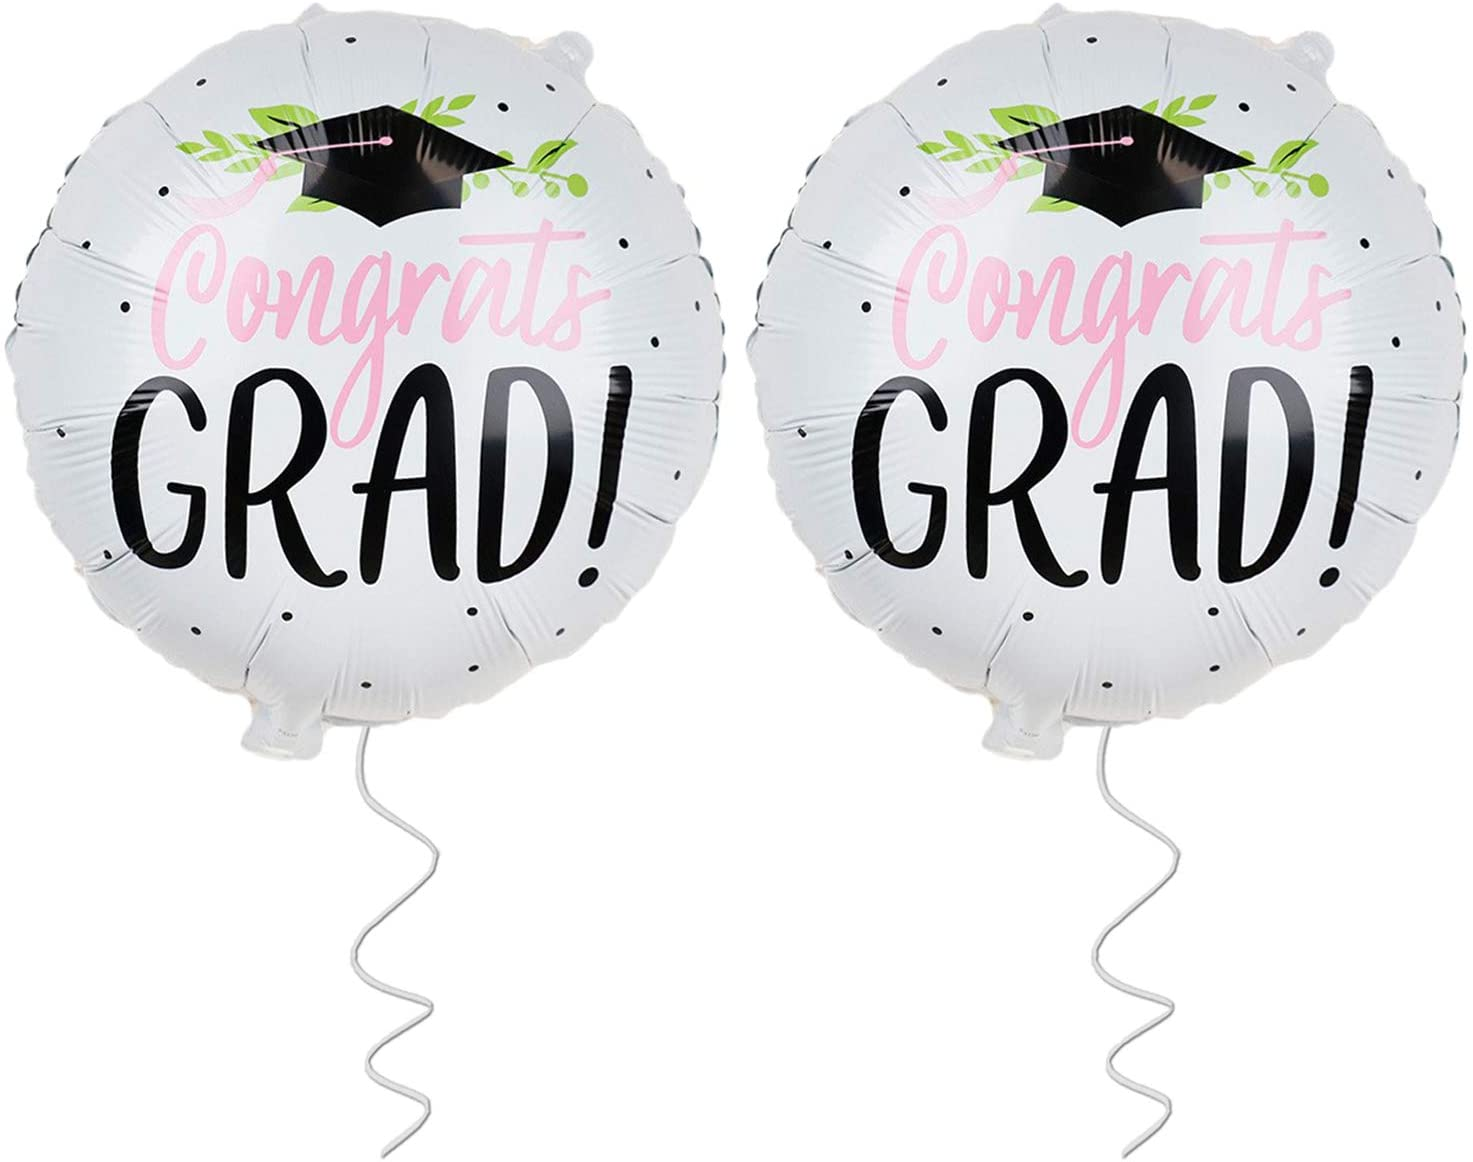 Graduation Balloons for Graduation Party Supplies 2020 - Pack of 2 | Congrats Grad Balloon with Graduation Cap - Congratulations Graduation Balloon for Seniors, High School, College, Pink and Black